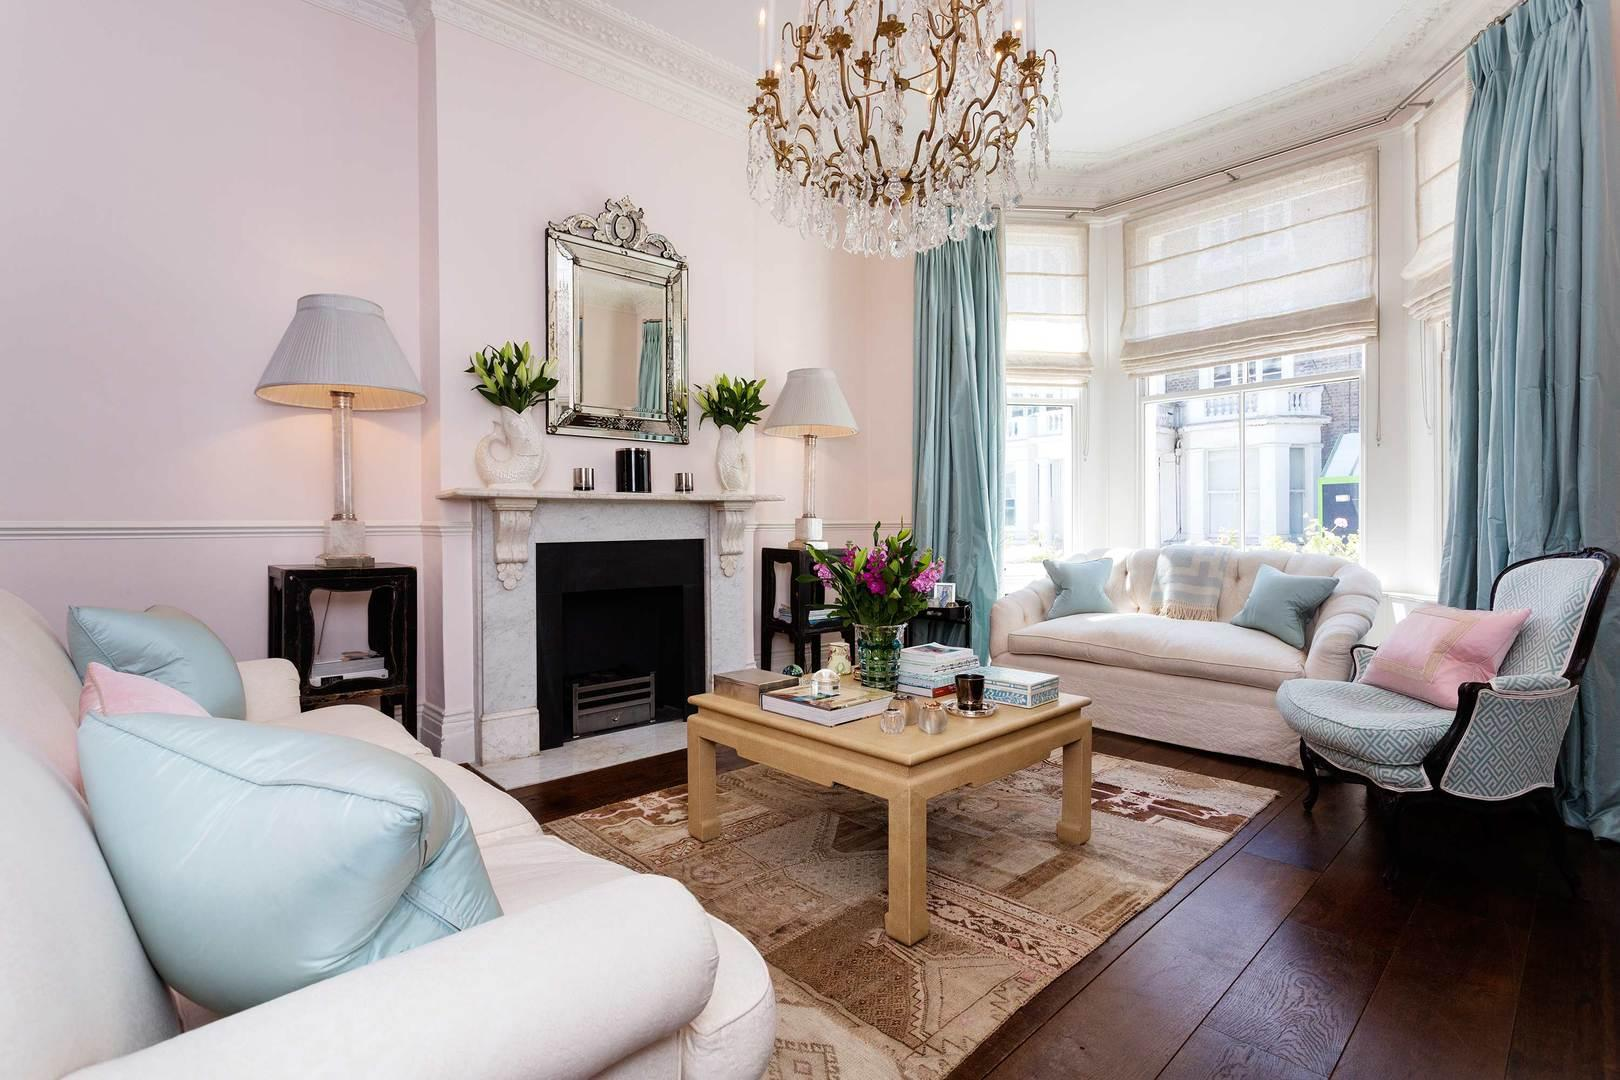 Property Image 1 - Spacious Chelsea 4 bedroom House with Private Garden